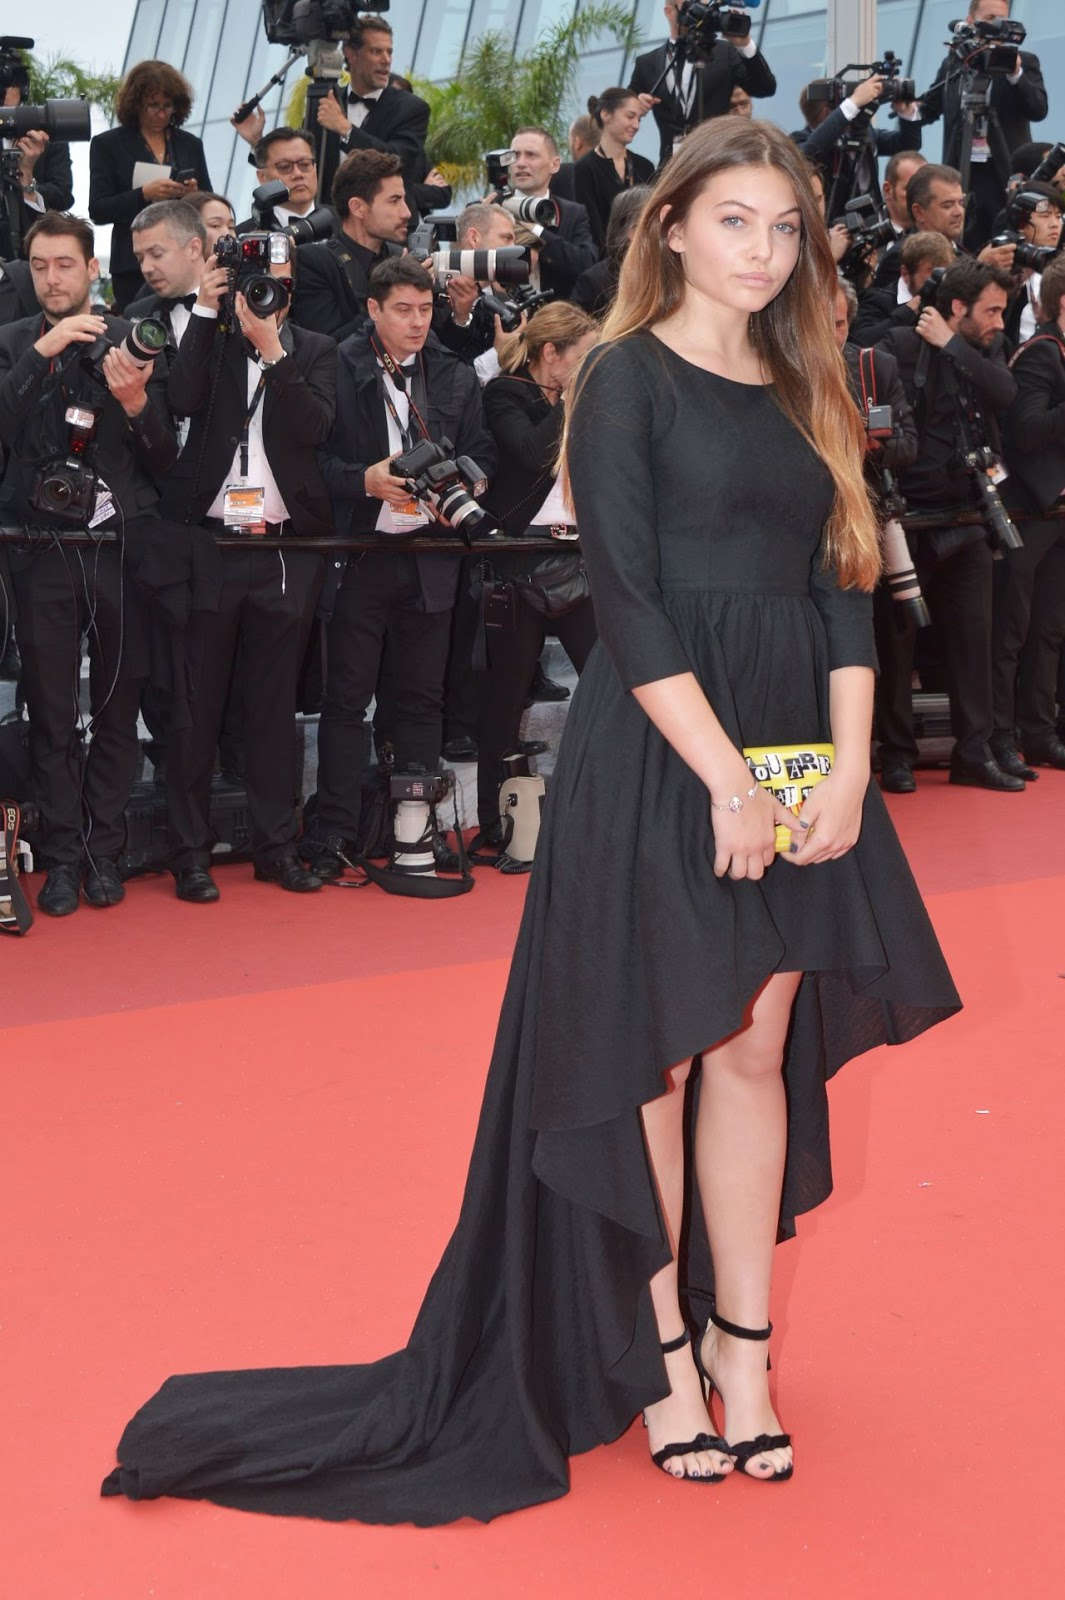 Full HQ Photos of Fashion Model Thylane Blondeau The BFG Premiere Cannes Film Festival In Cannes 2016